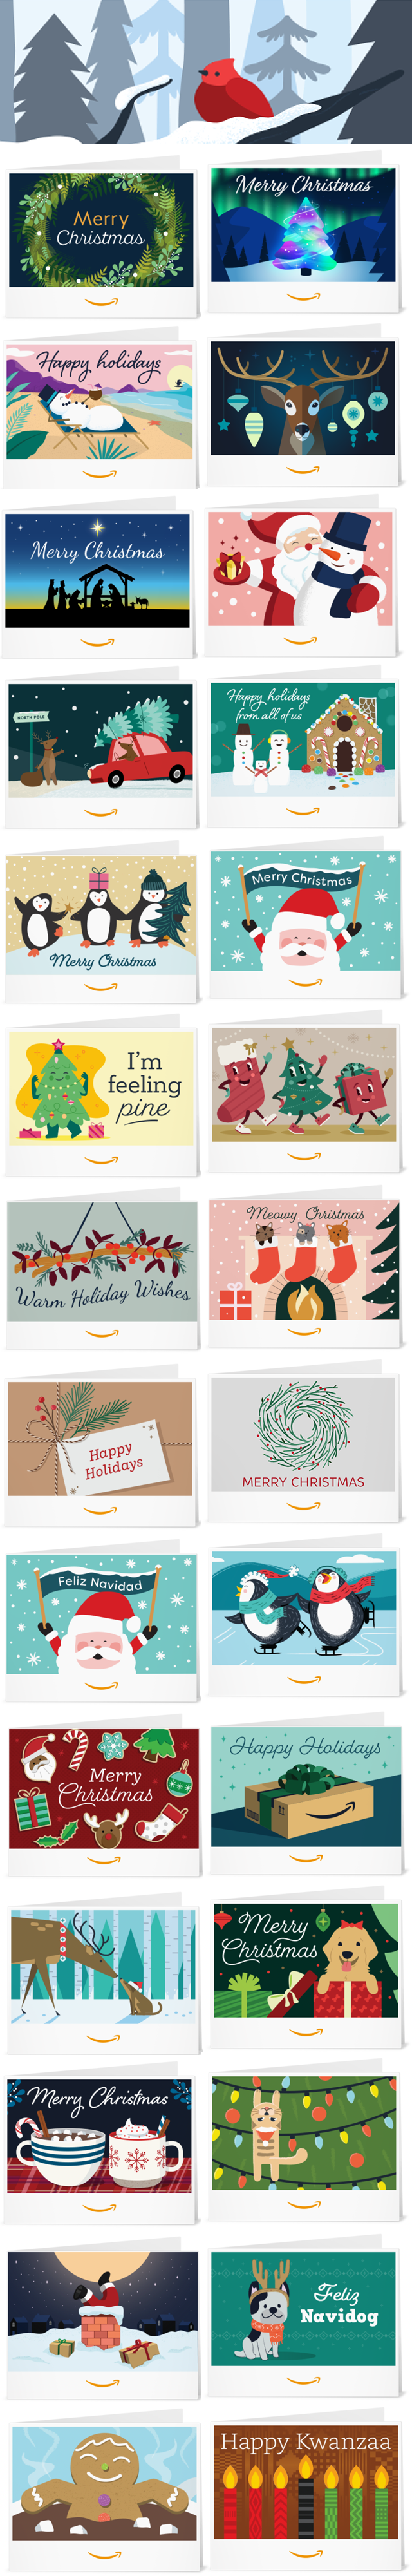 PRINT YOUR OWN AMAZON CHRISTMAS GIFT CARD FROM HOME